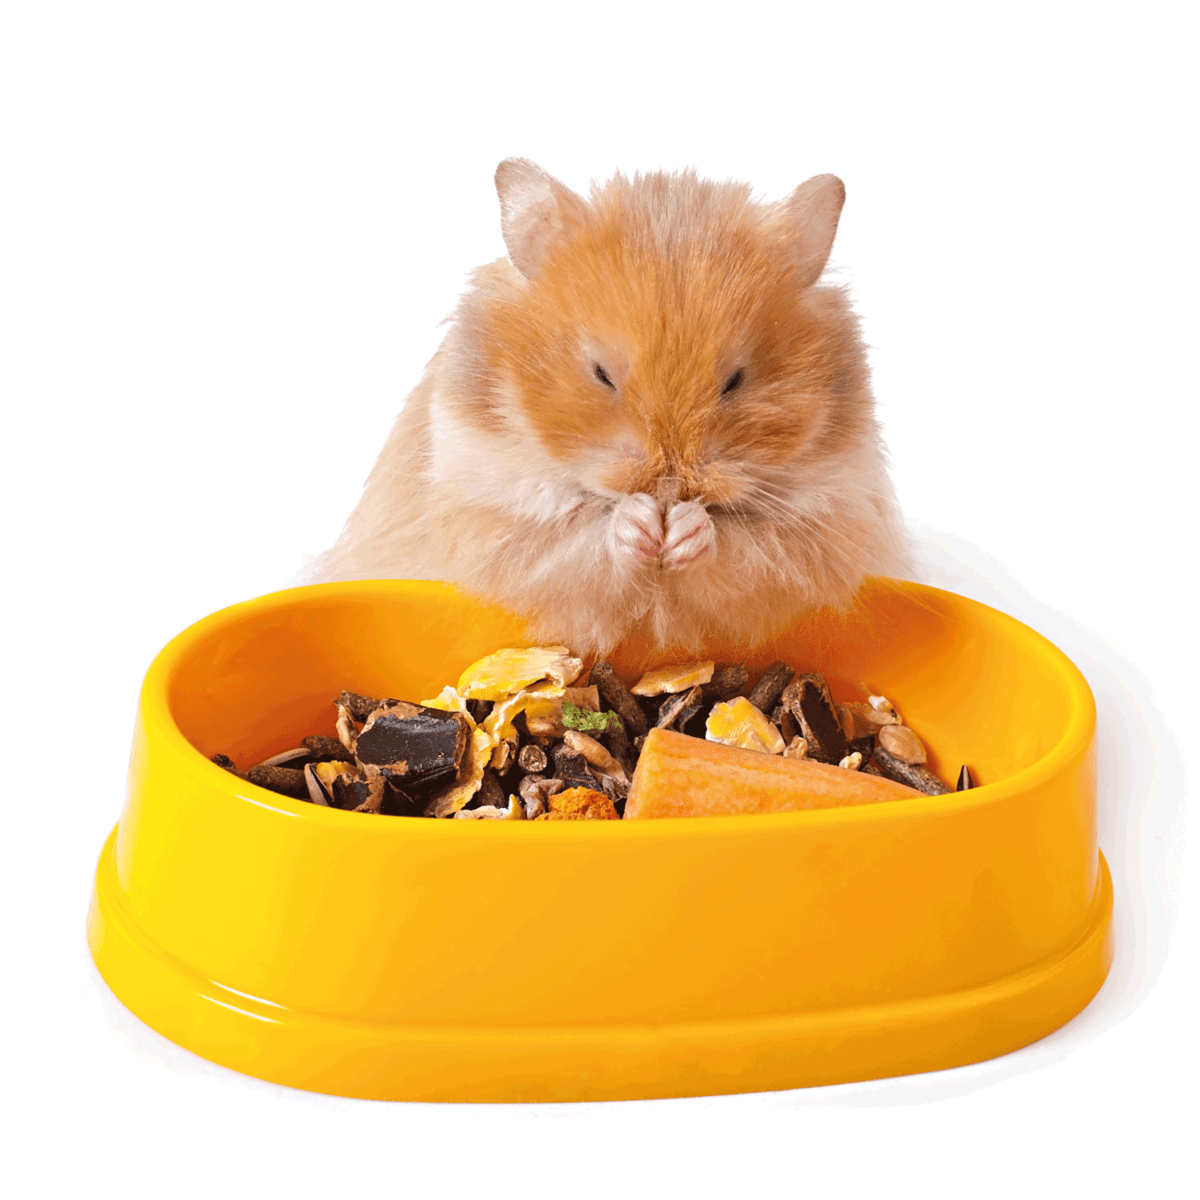 Hamster eating feed. Are You Overfeeding Your Hamster